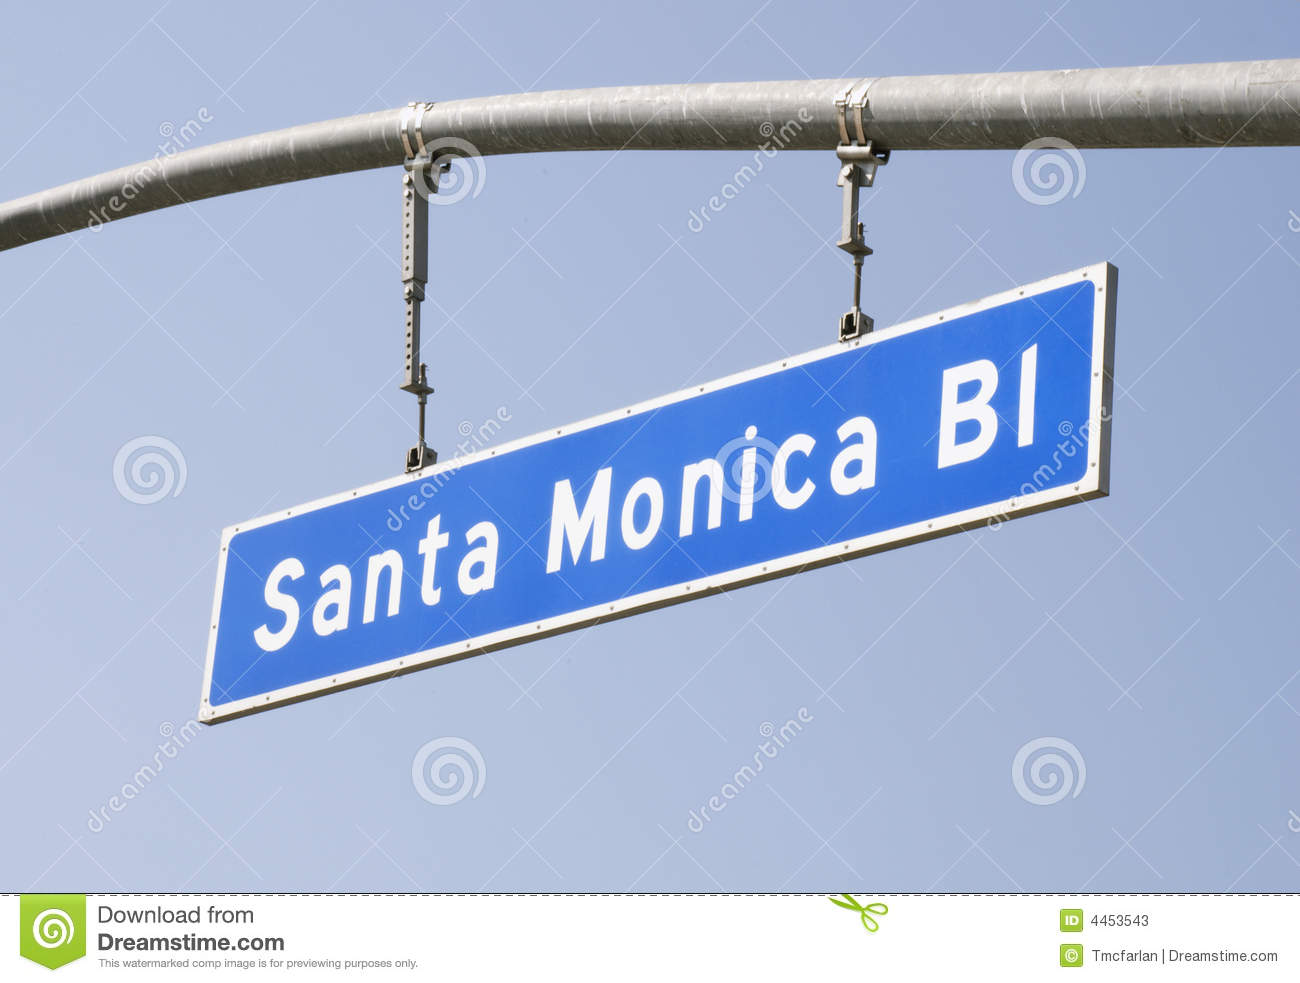 Kerstman Monica Blvd Street Sign